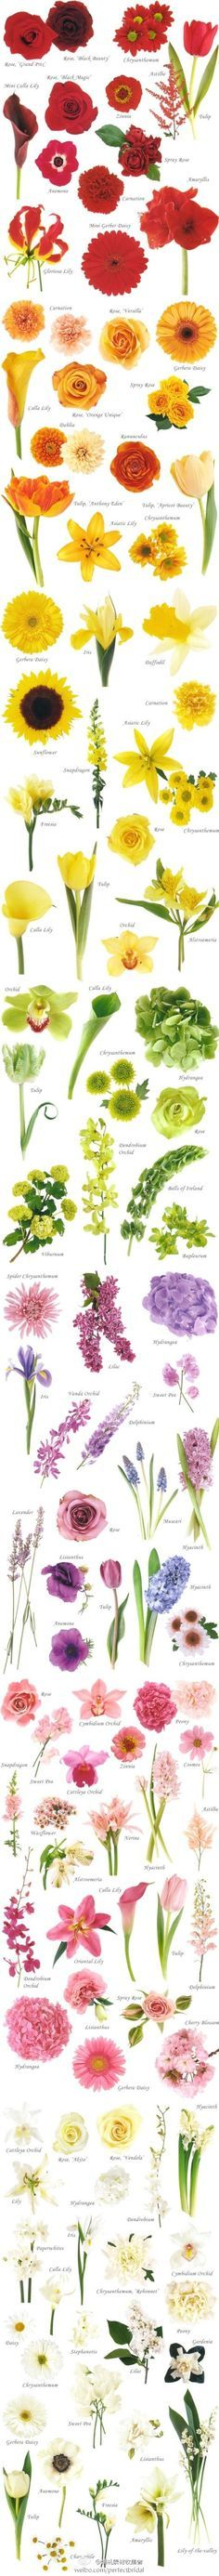 Flower Chart. This will definitely come in handy some day!